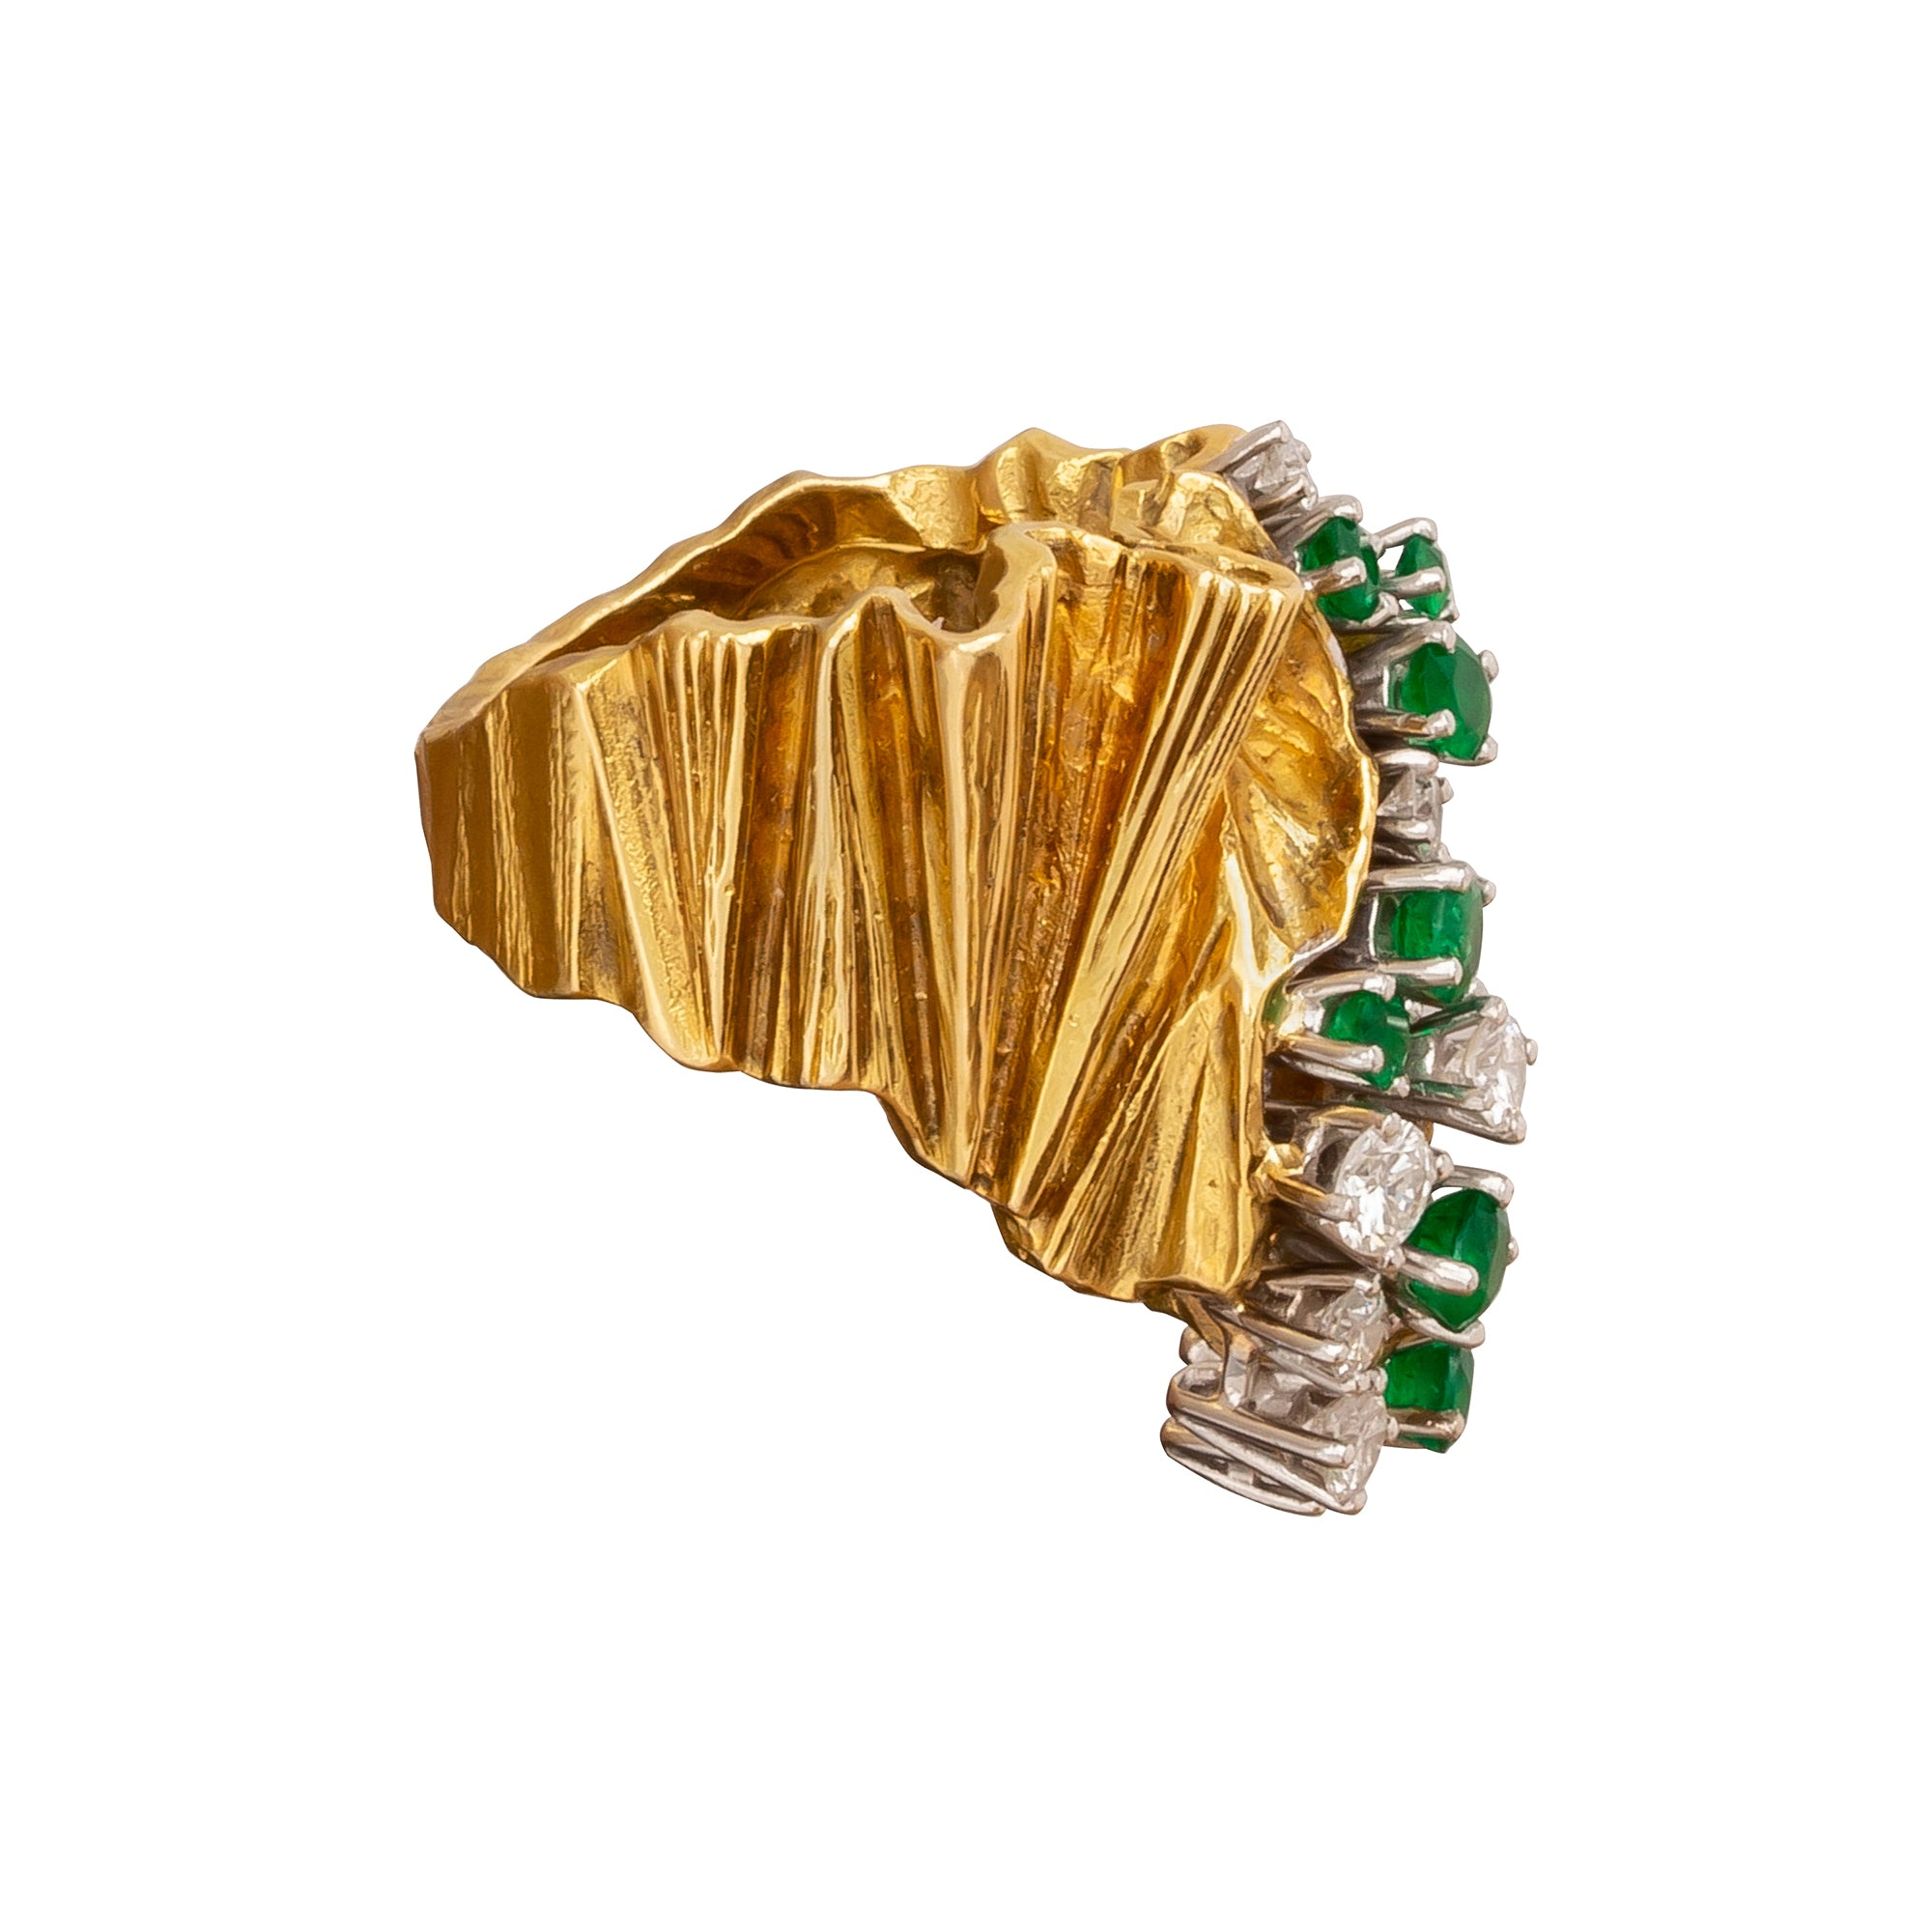 Sculptural Gubelin Ring - Antique & Vintage Jewelry - Rings | Broken English Jewelry